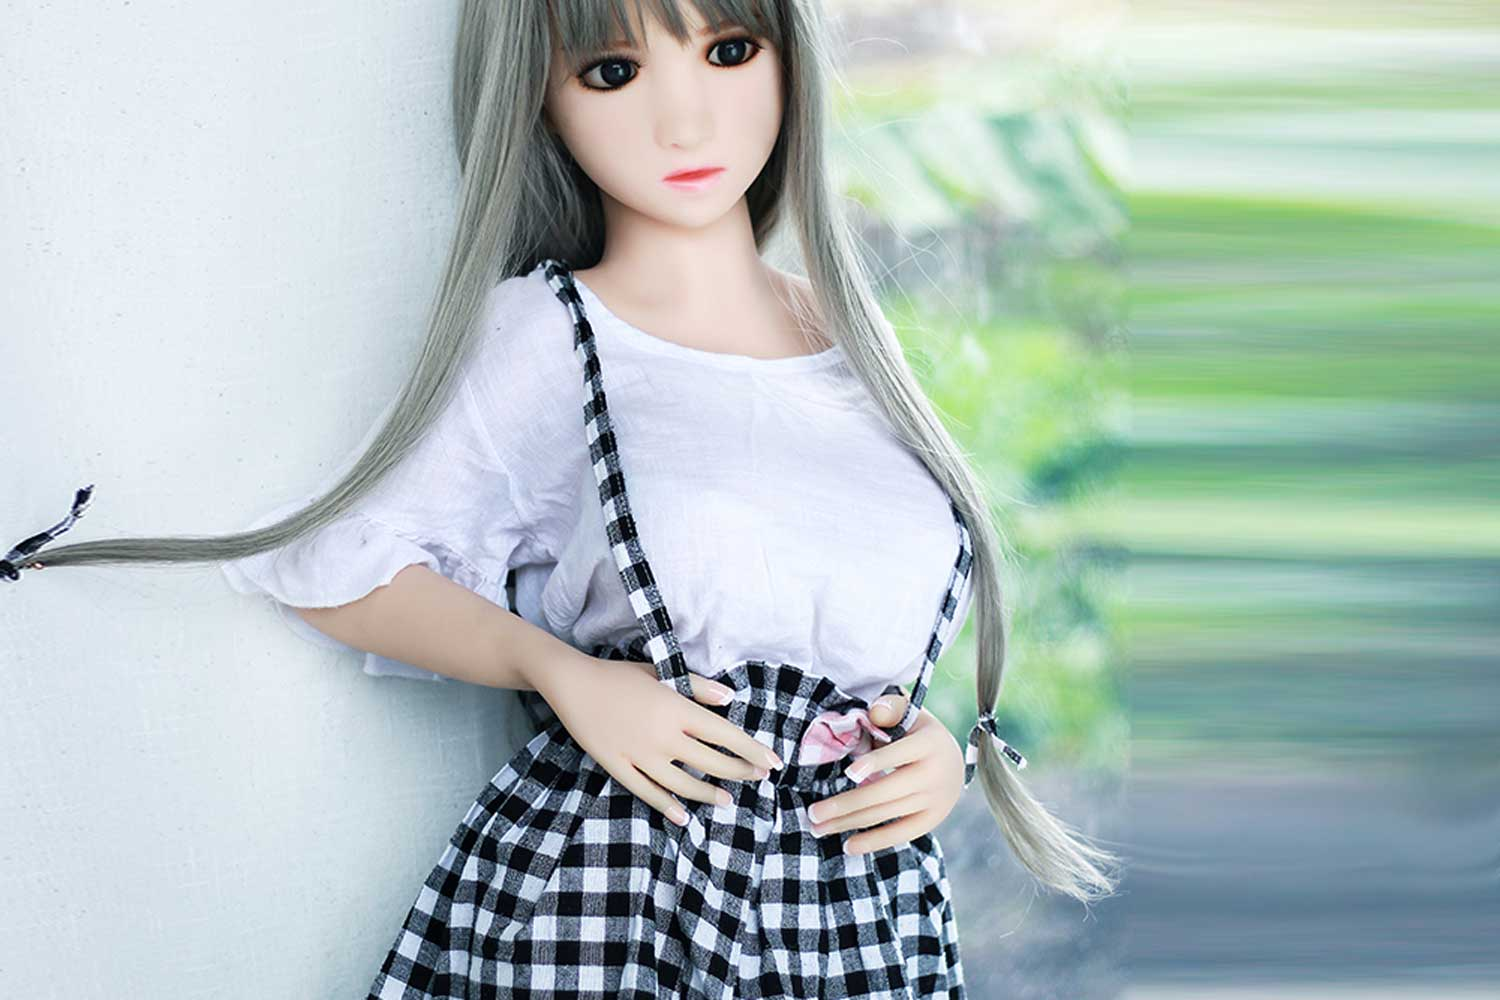 Mini sex doll with hand strap